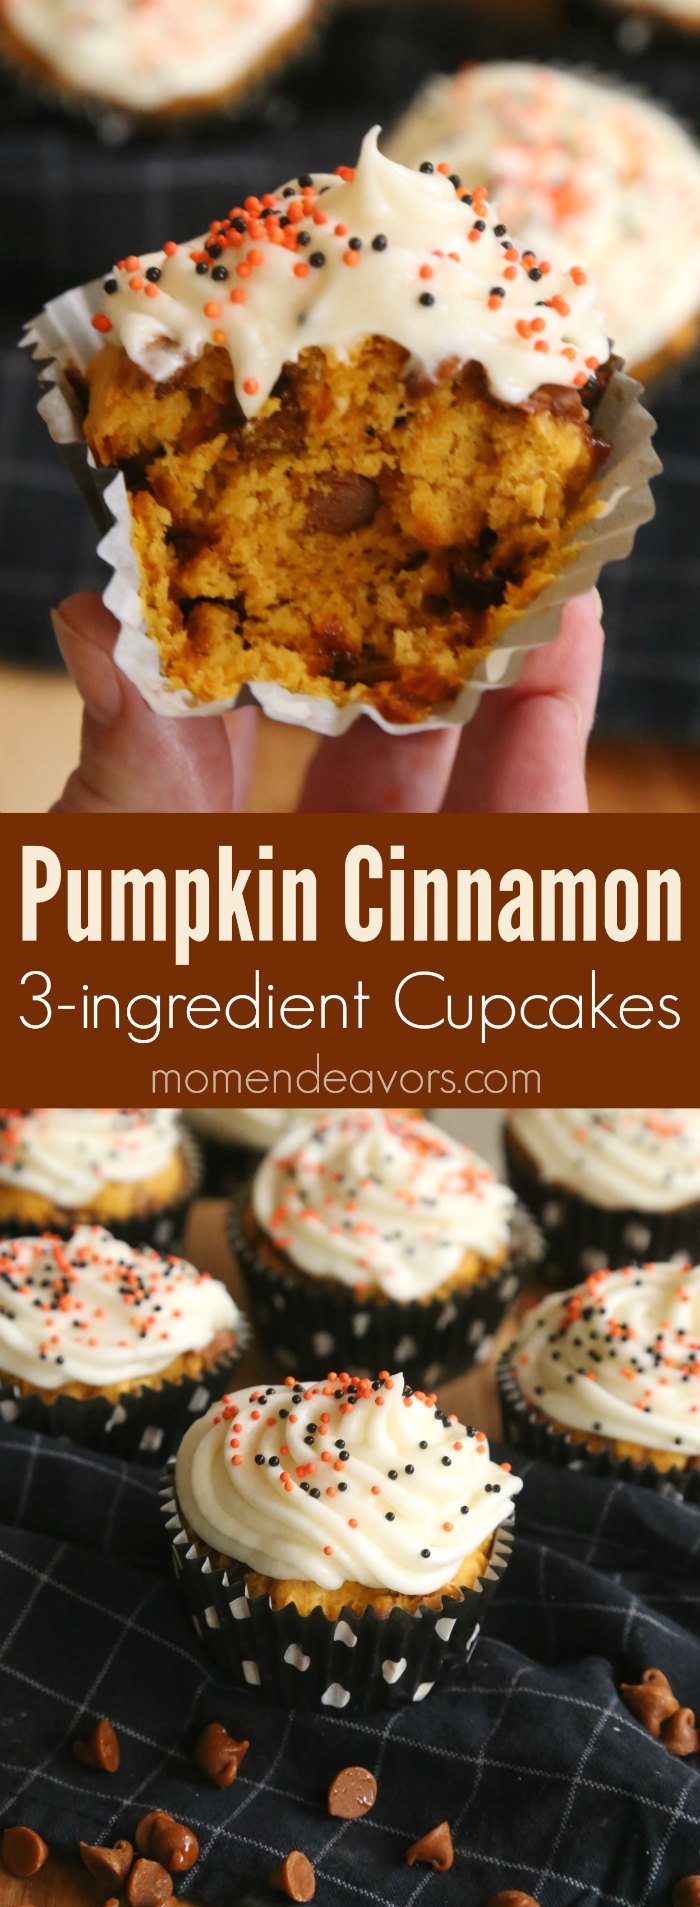 pumpkin-cinnamon-cupcakes-recipe